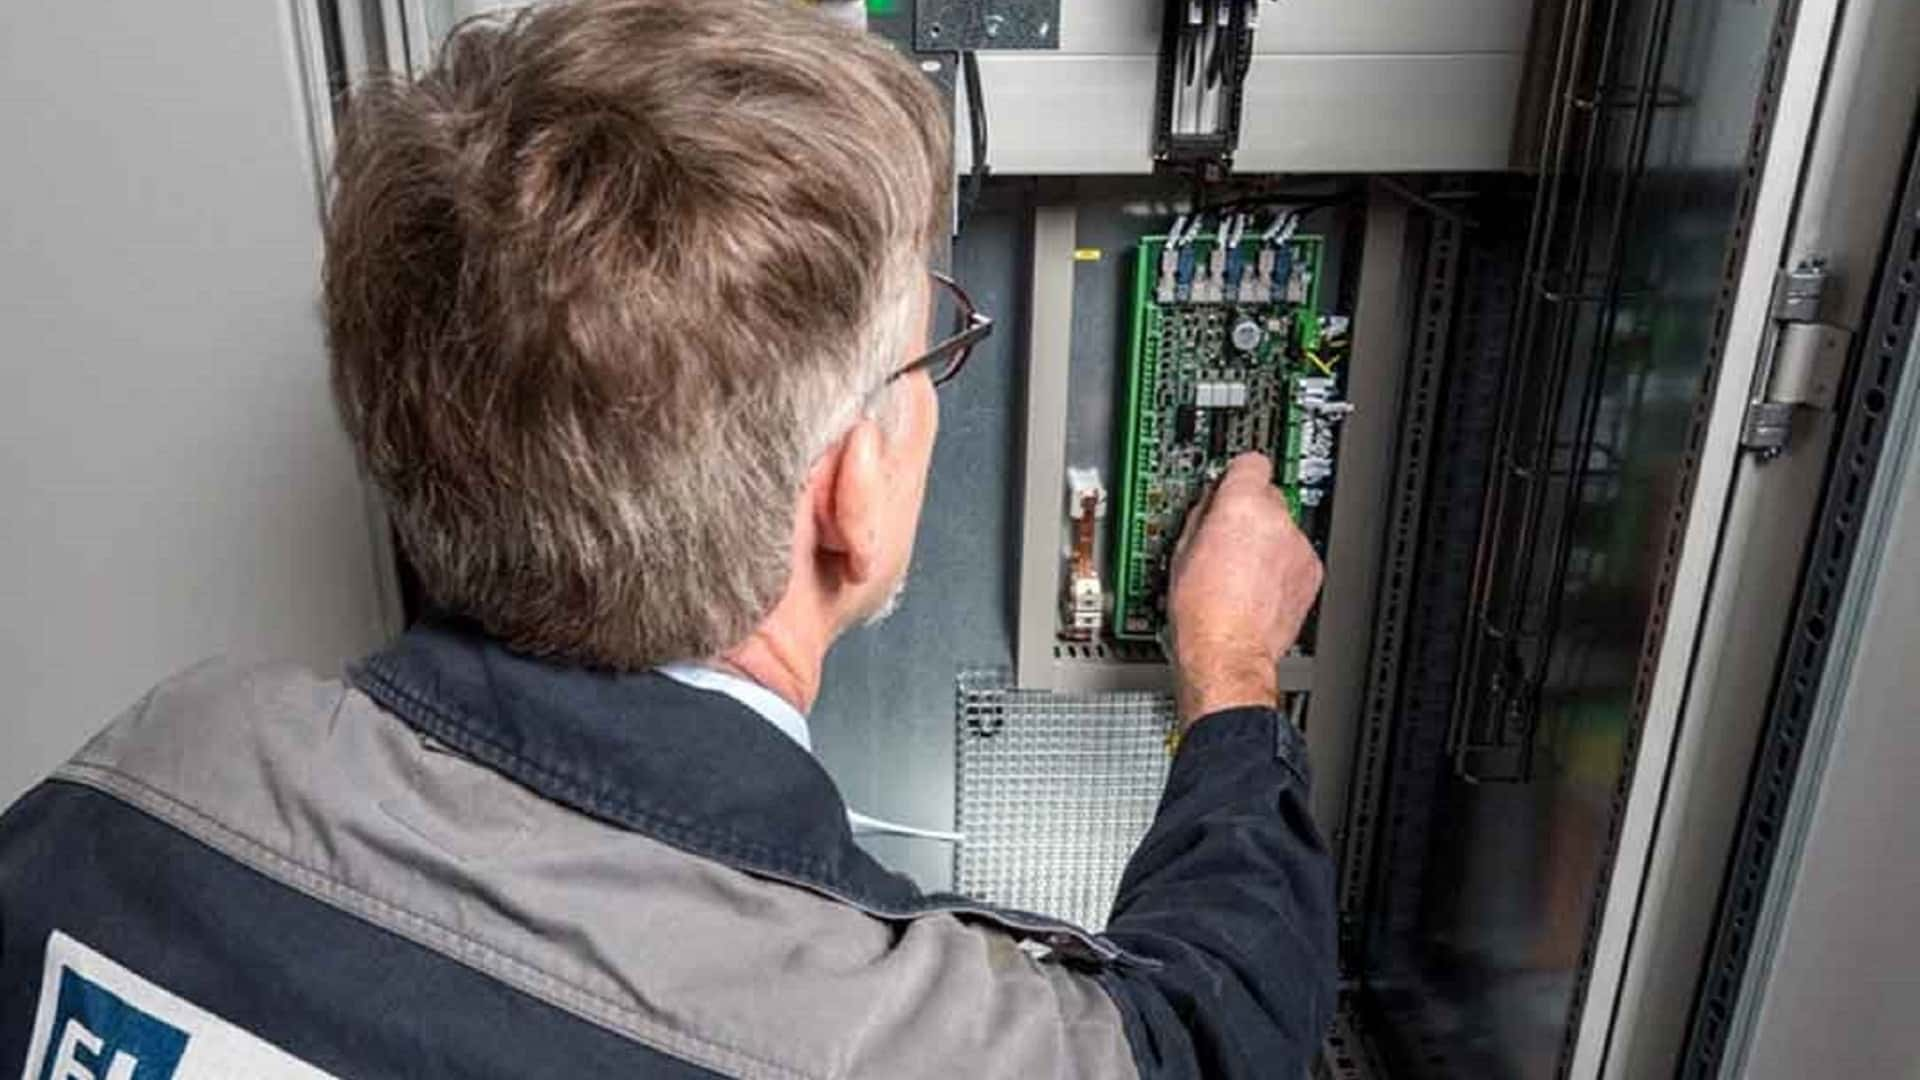 Engineer working on electrical panel